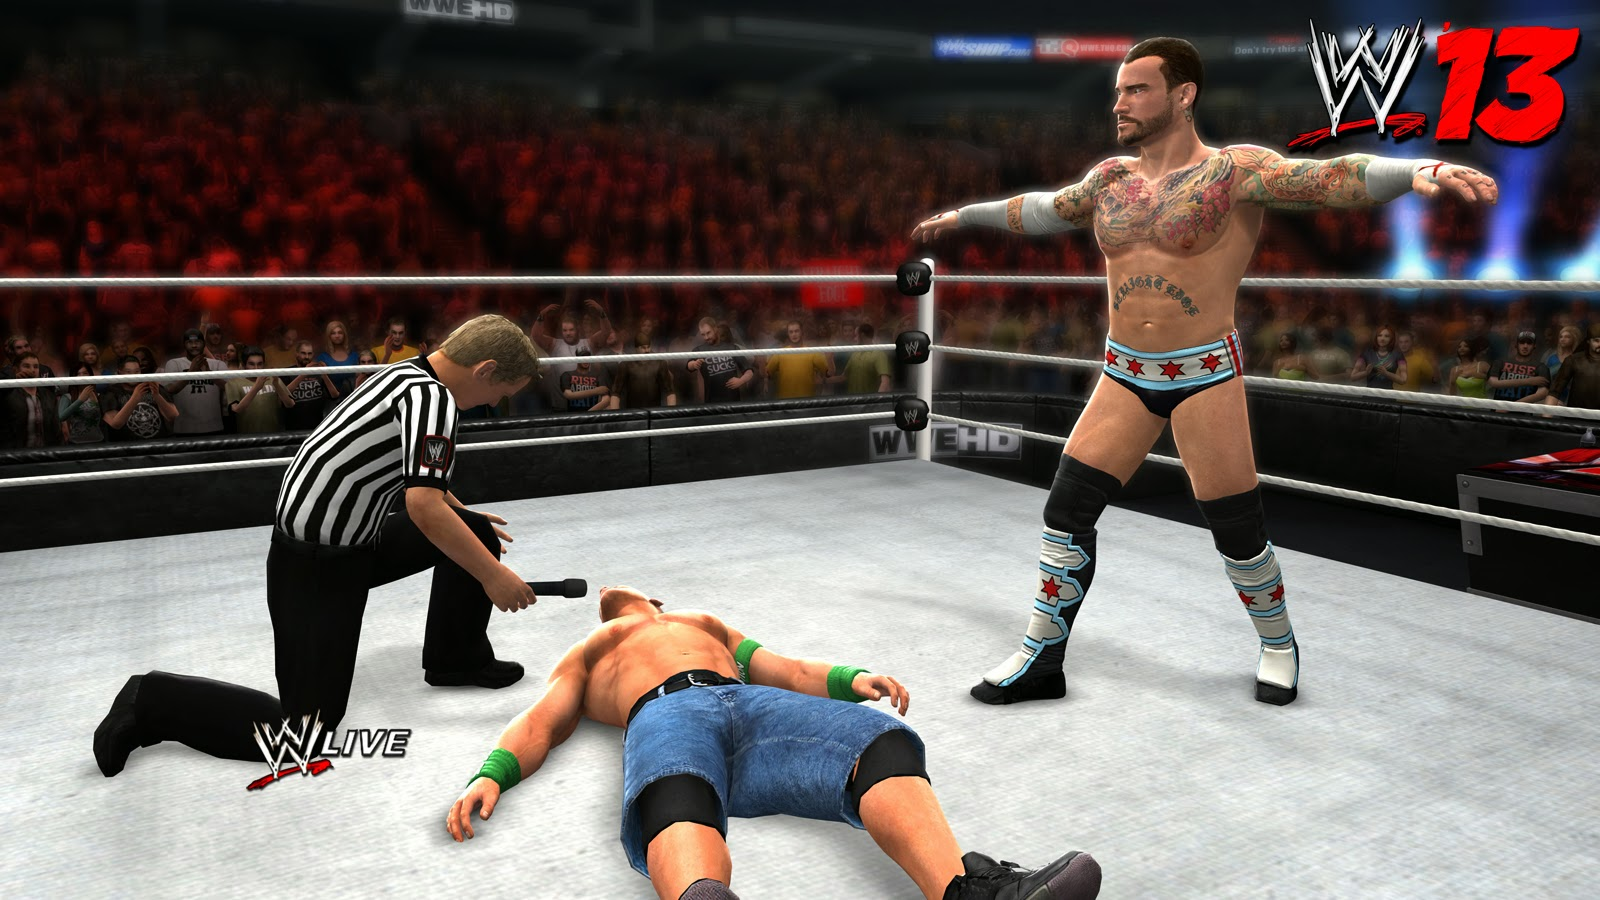 WWE 13 wrestling game